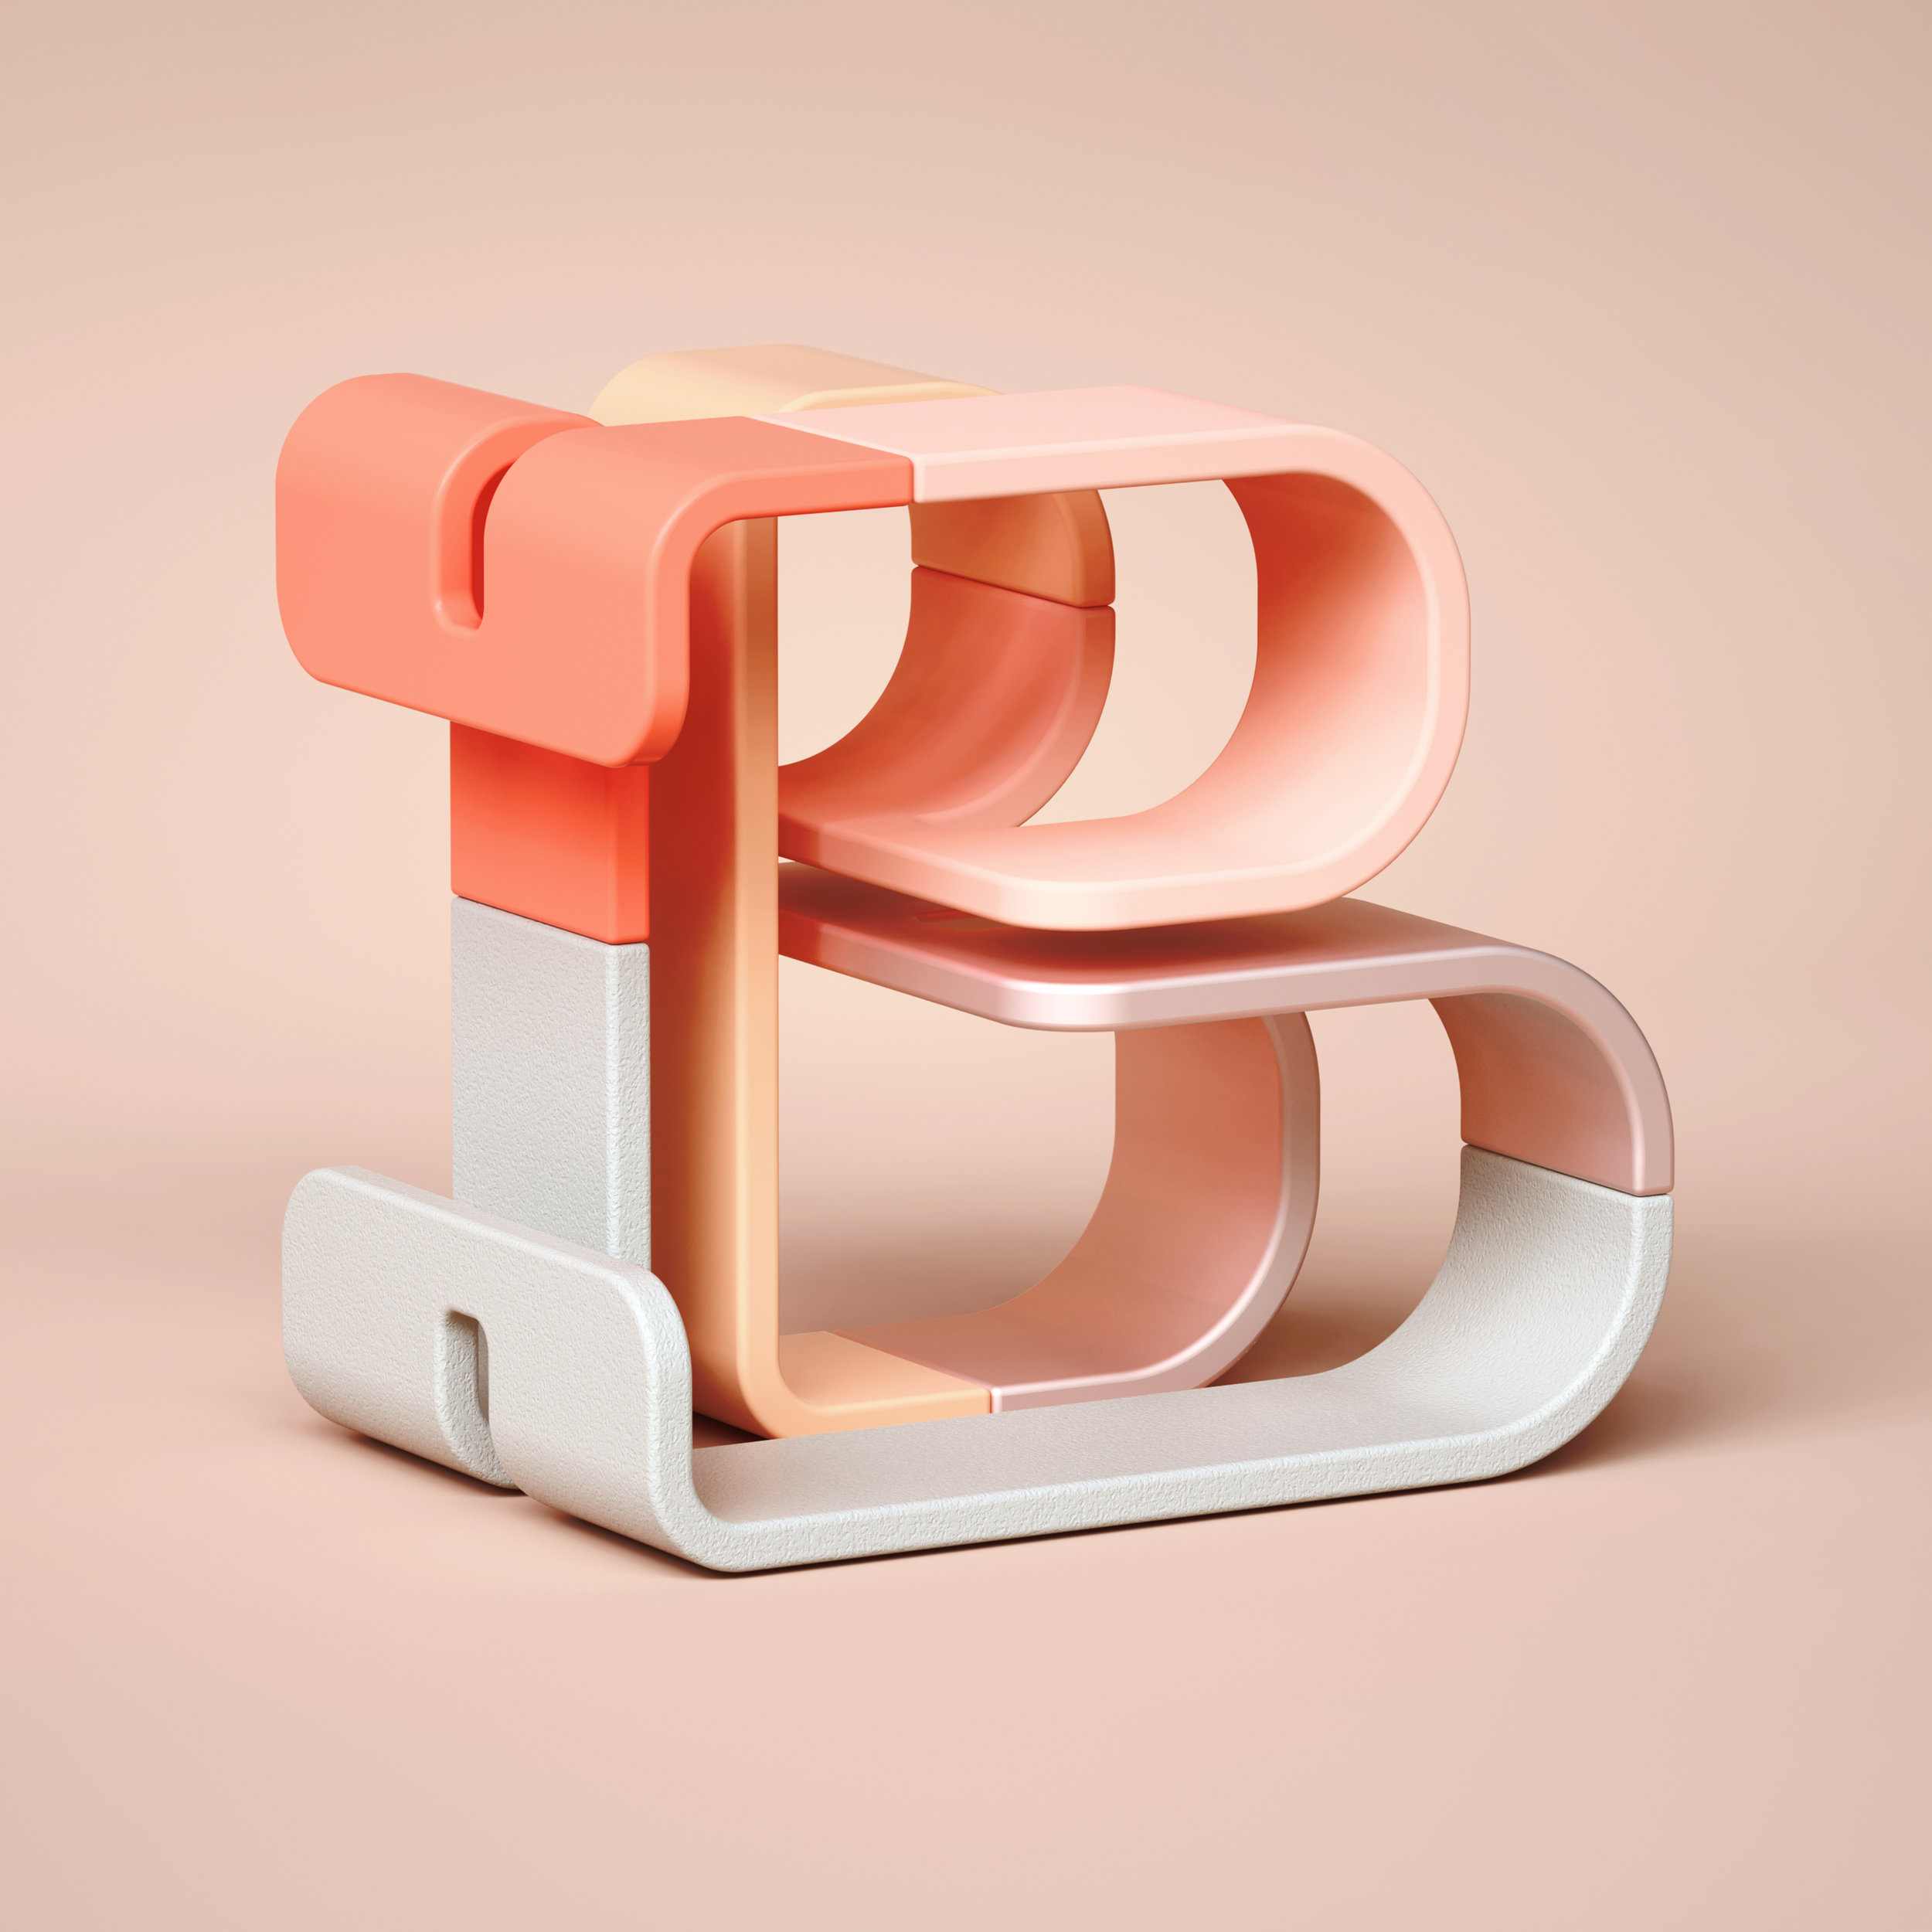 36 Days of Type 2019 - 3D Typeform letter B visual.